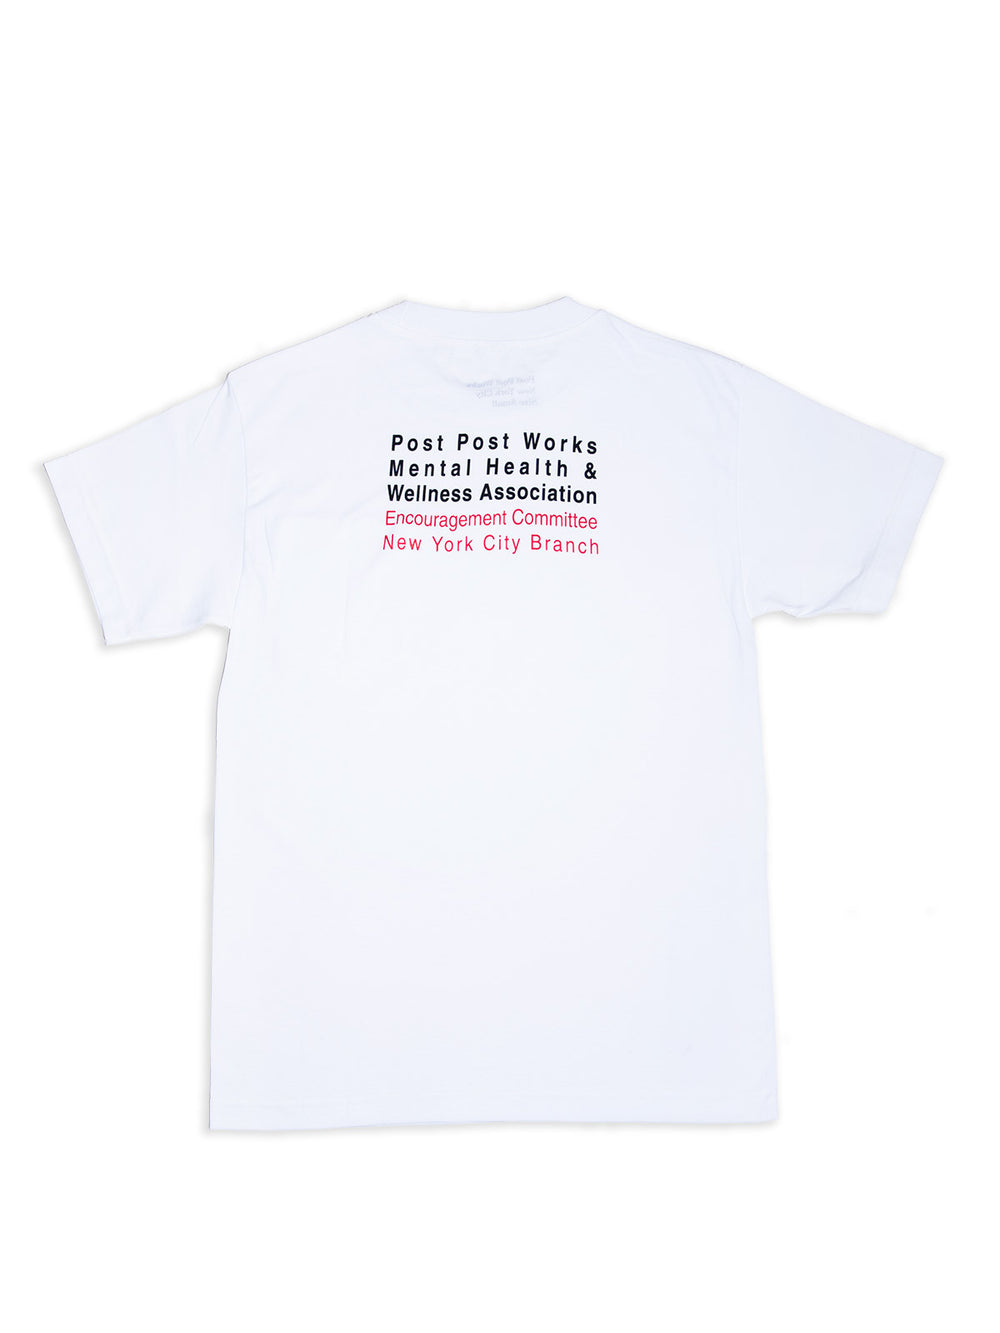 Encouragement Committee Members Tee